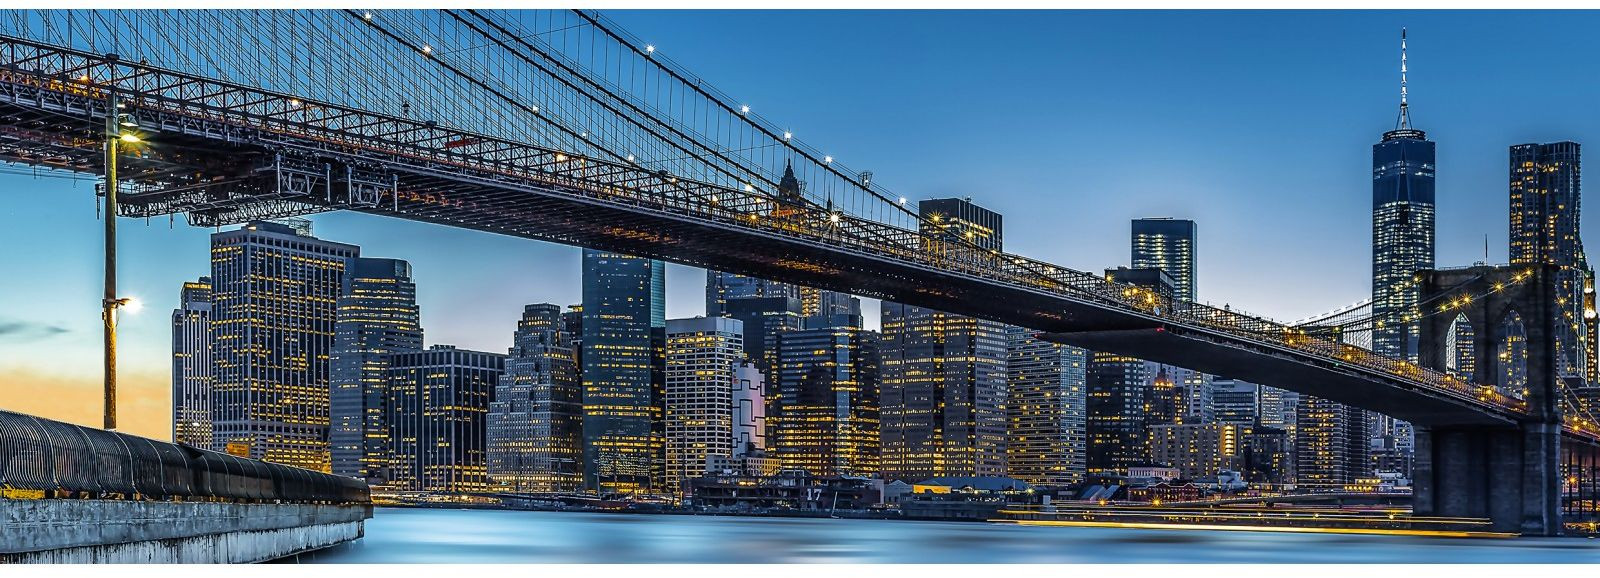 Valokuvatapetti Idealdecor, Blue Hour over New York 4-osaa, 00863 366x127 cm, non-woven